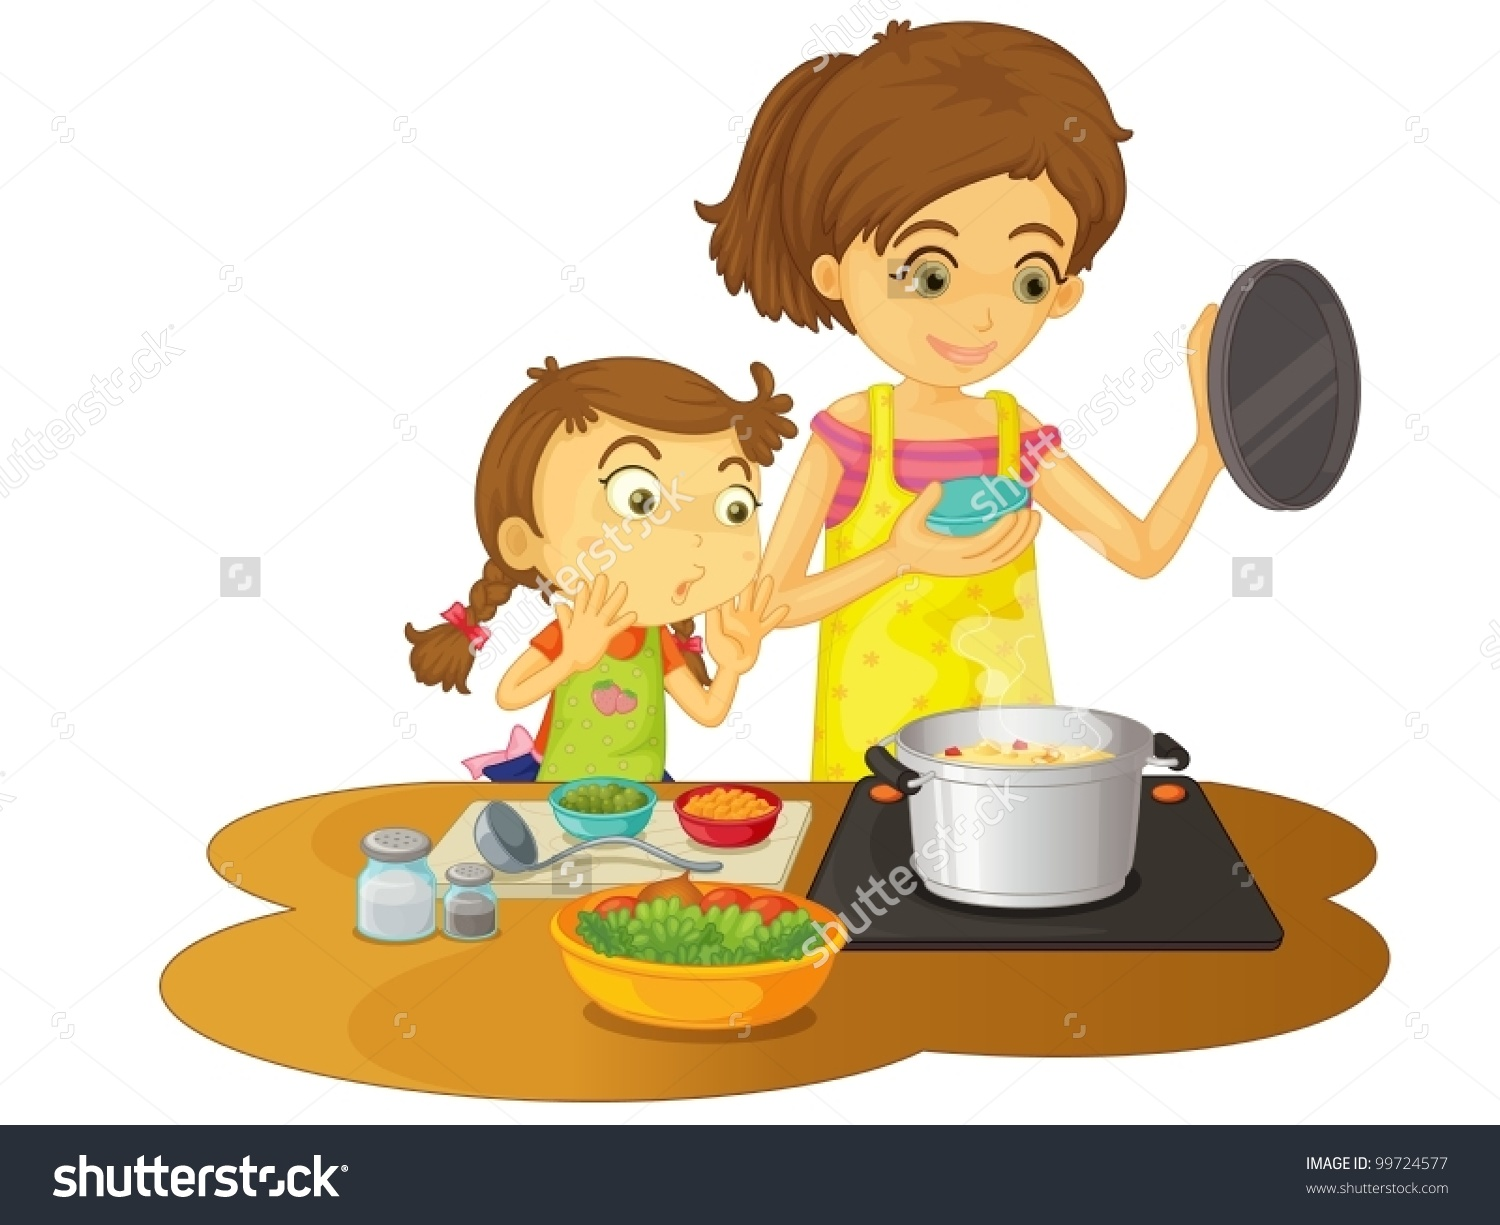 Help cook dinner clipart.